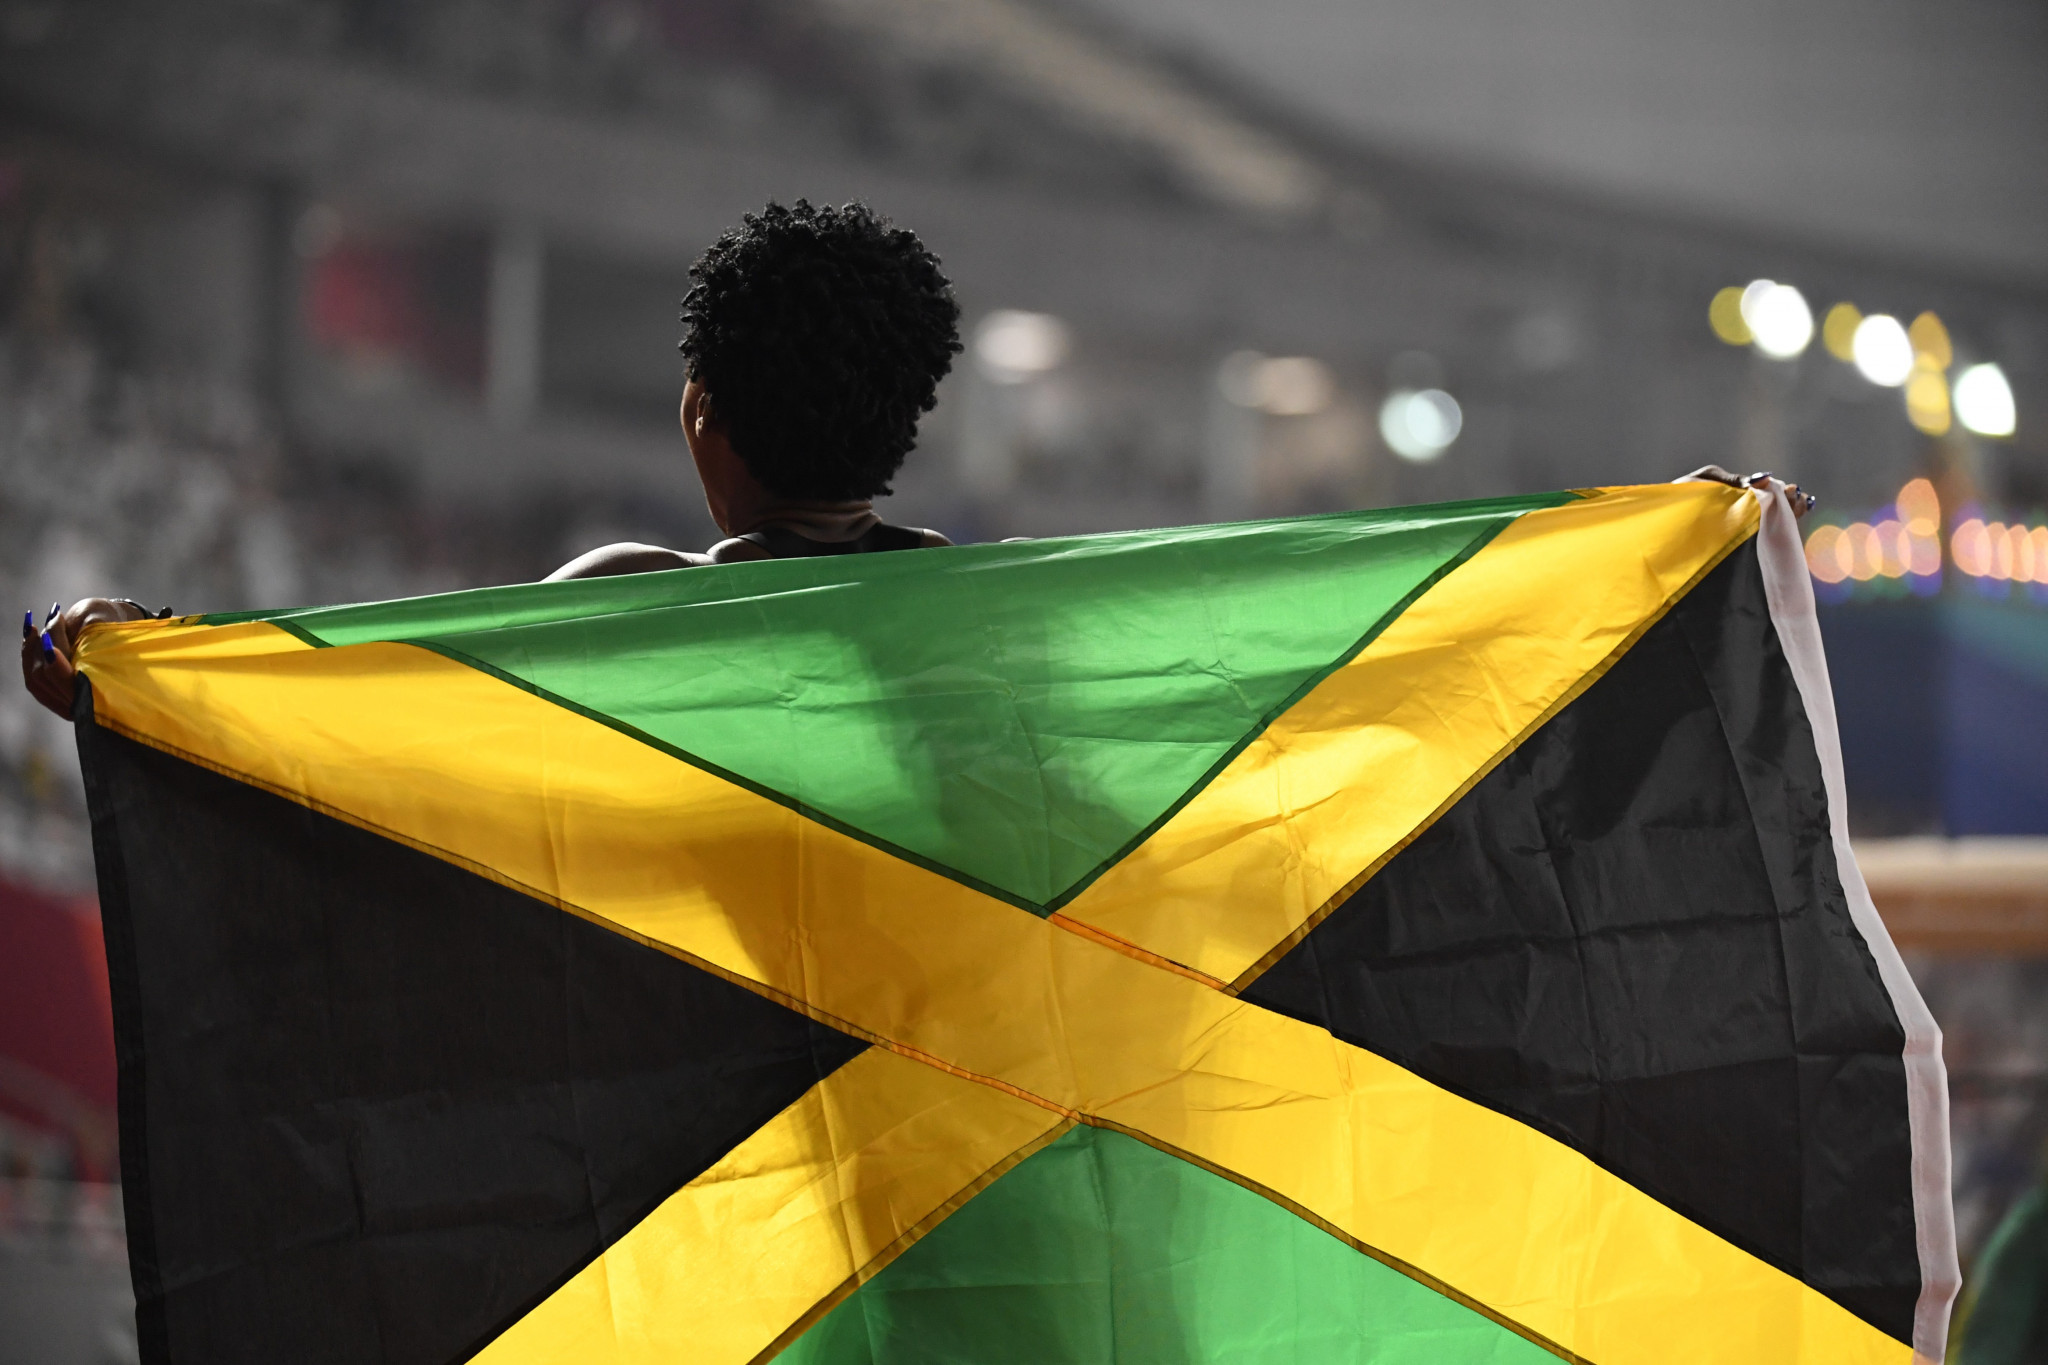 Jamaica to hold Tokyo 2020 training camps in Tottori